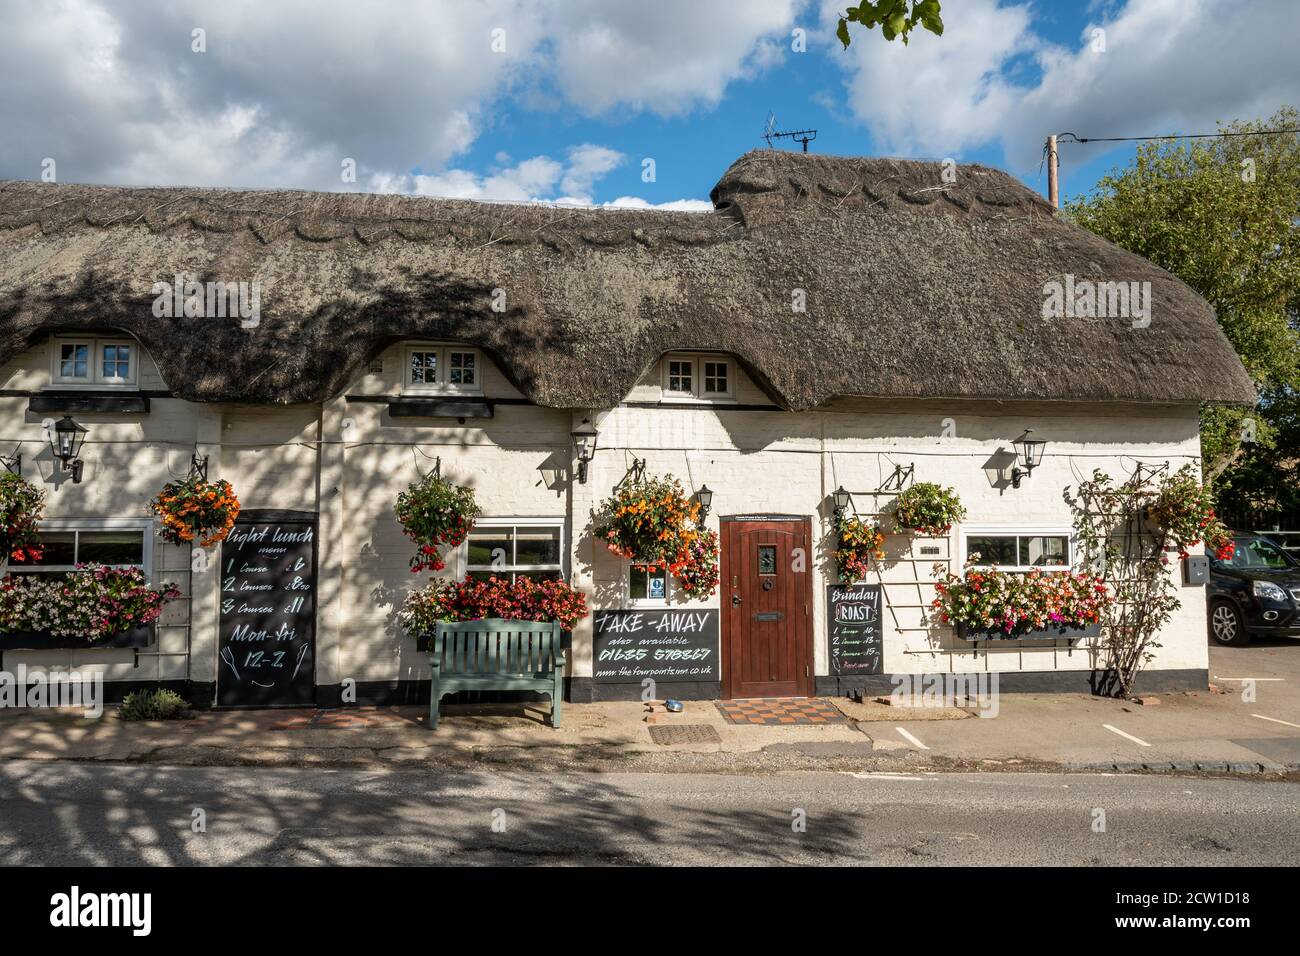 The Four Points Inn, a village pub and restaurant in Aldworth, Berkshire, UK. Exterior of the public house decorated with flowers and hanging baskets Stock Photo